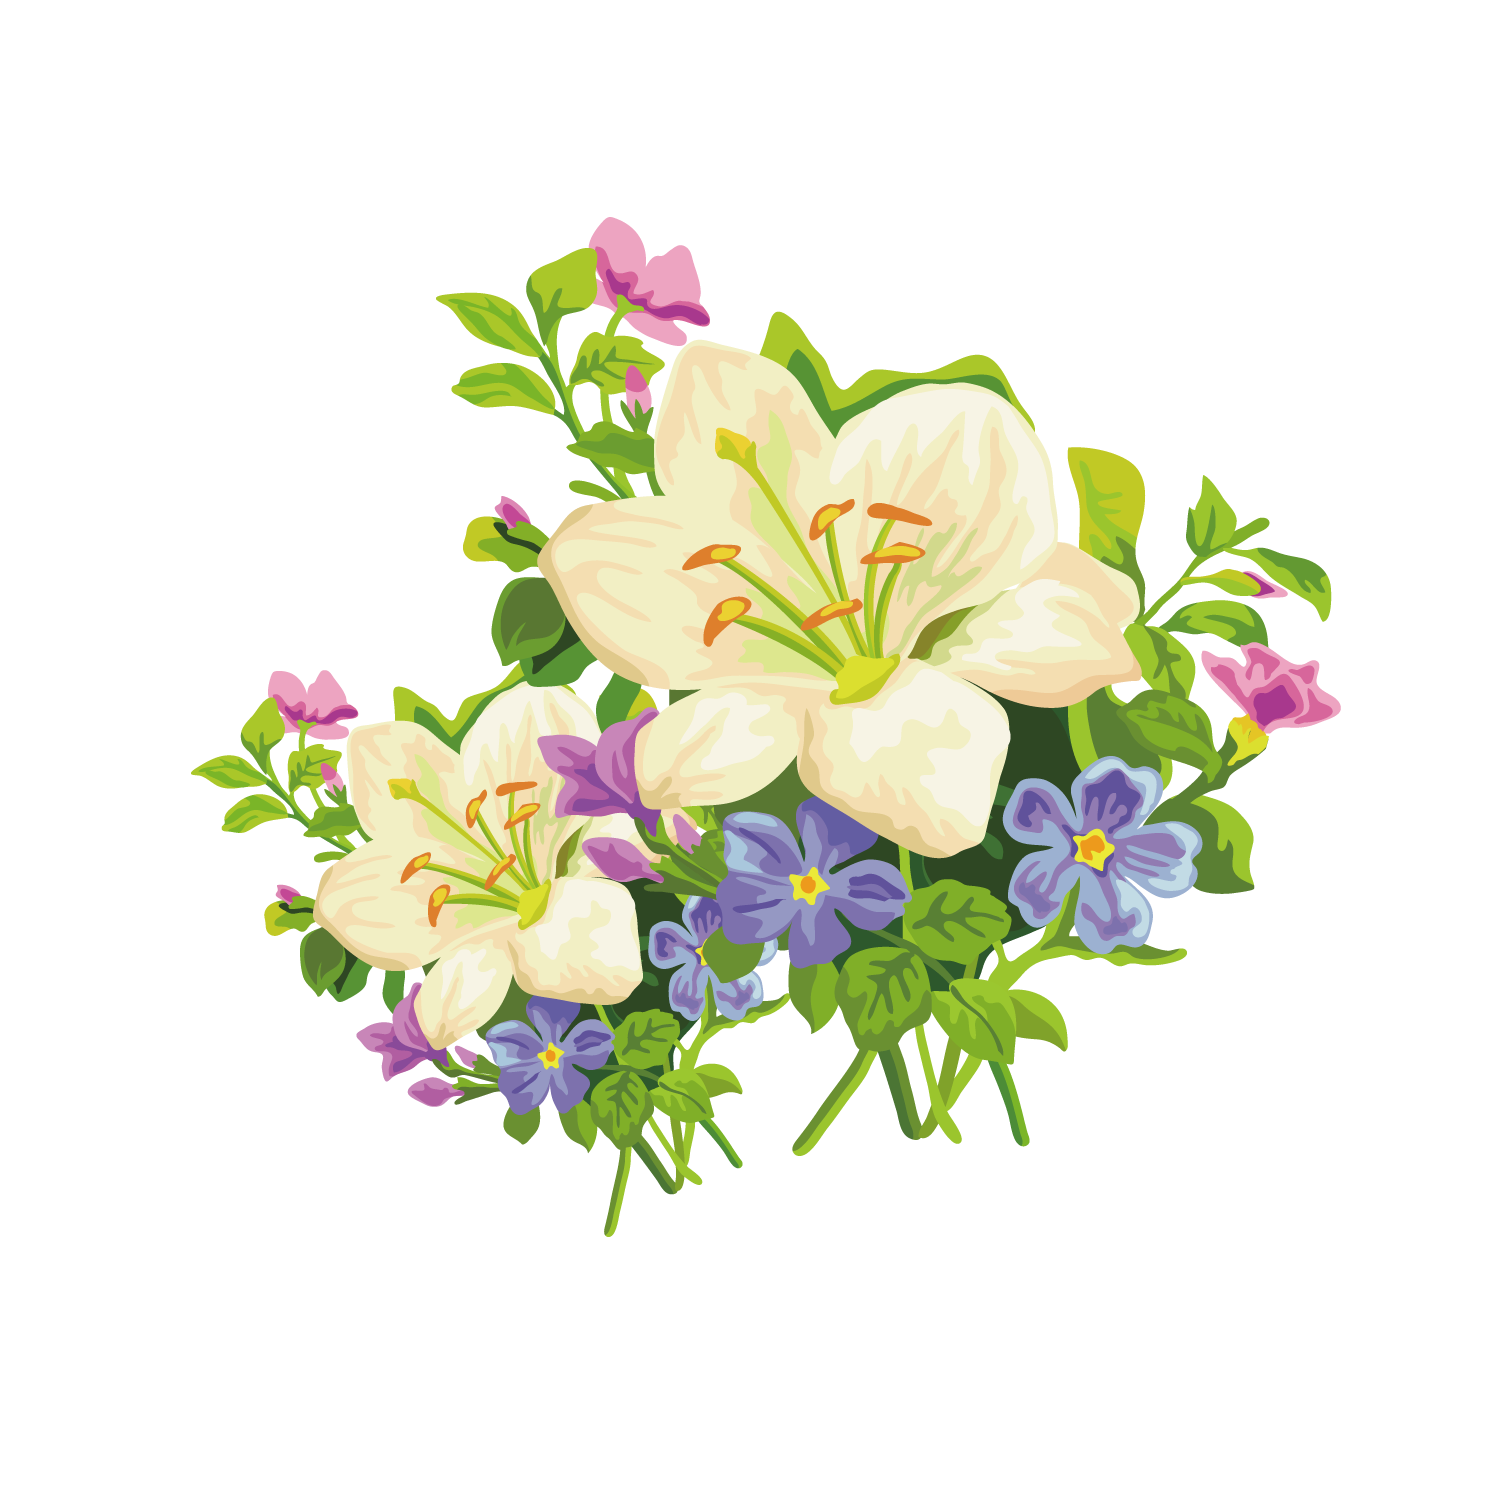 Easter flowers bouquet png. Lily amaryllis belladonna flower